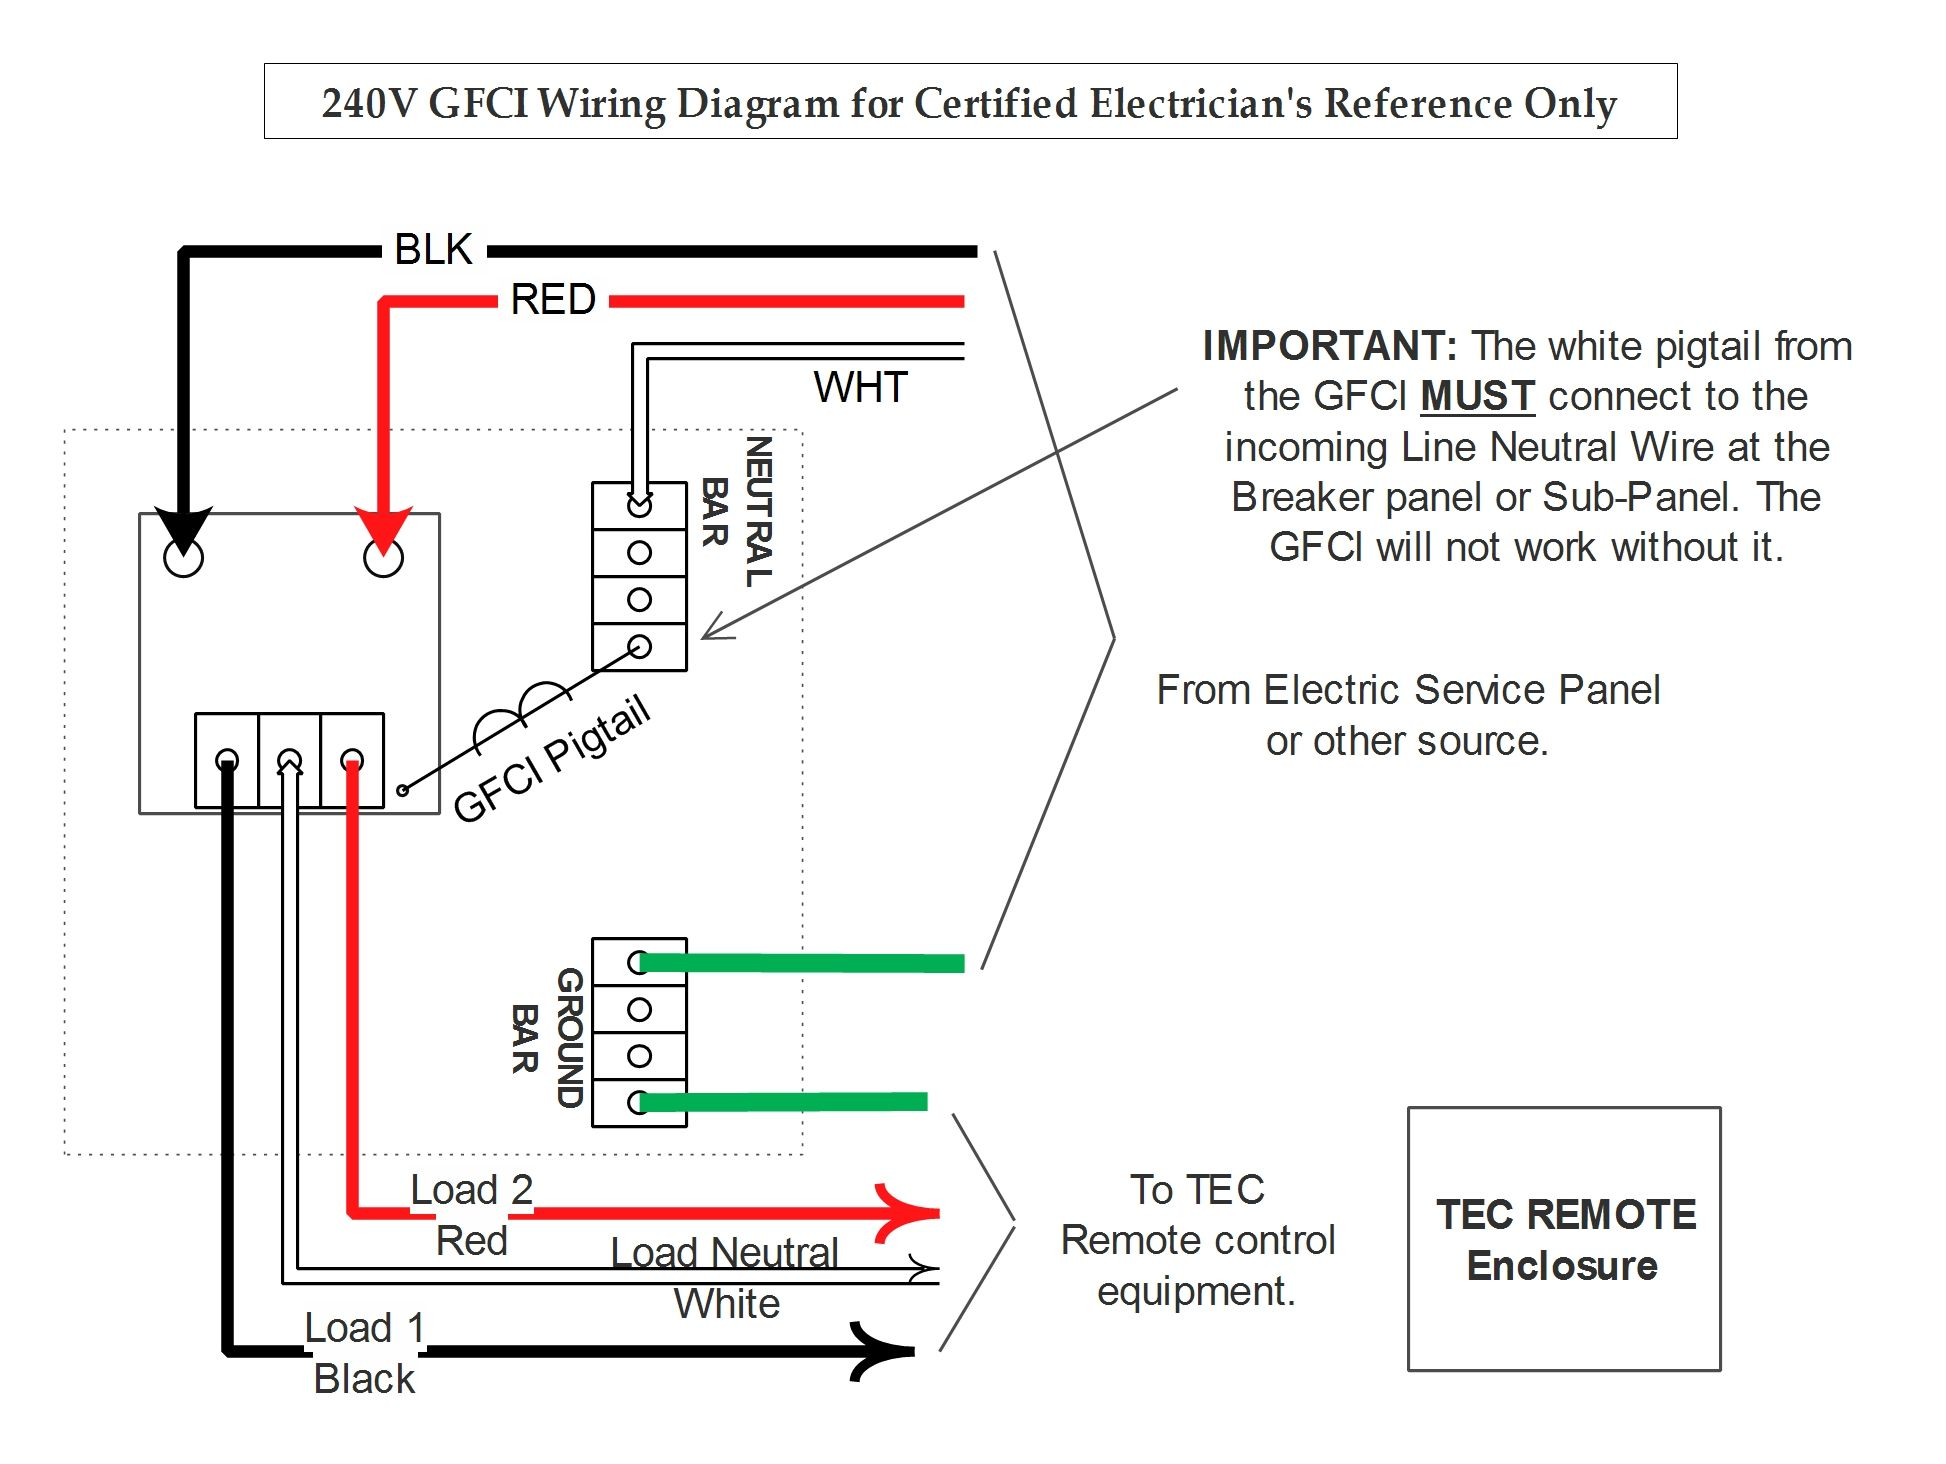 GFCI 240 Wiring boat hoist wiring diagram boat free wiring diagrams readingrat net trus t lift wiring diagram at n-0.co